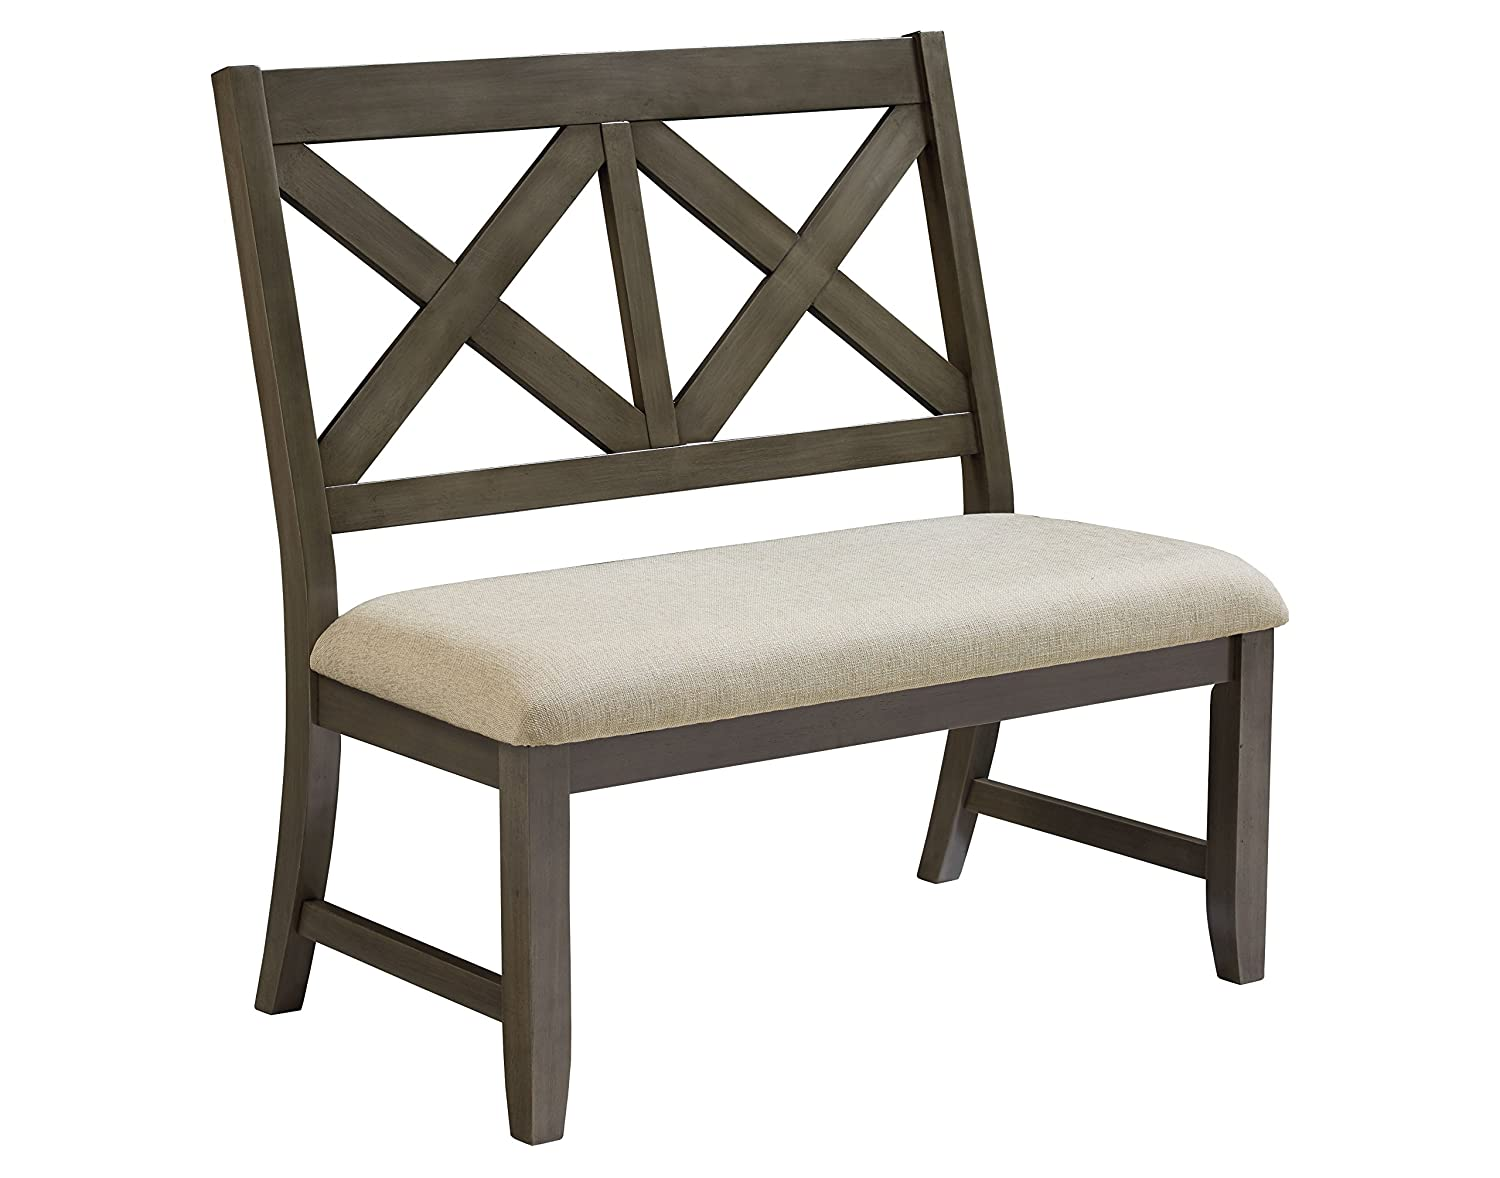 Standard Furniture Omaha Bench, Saddle Brown 16189